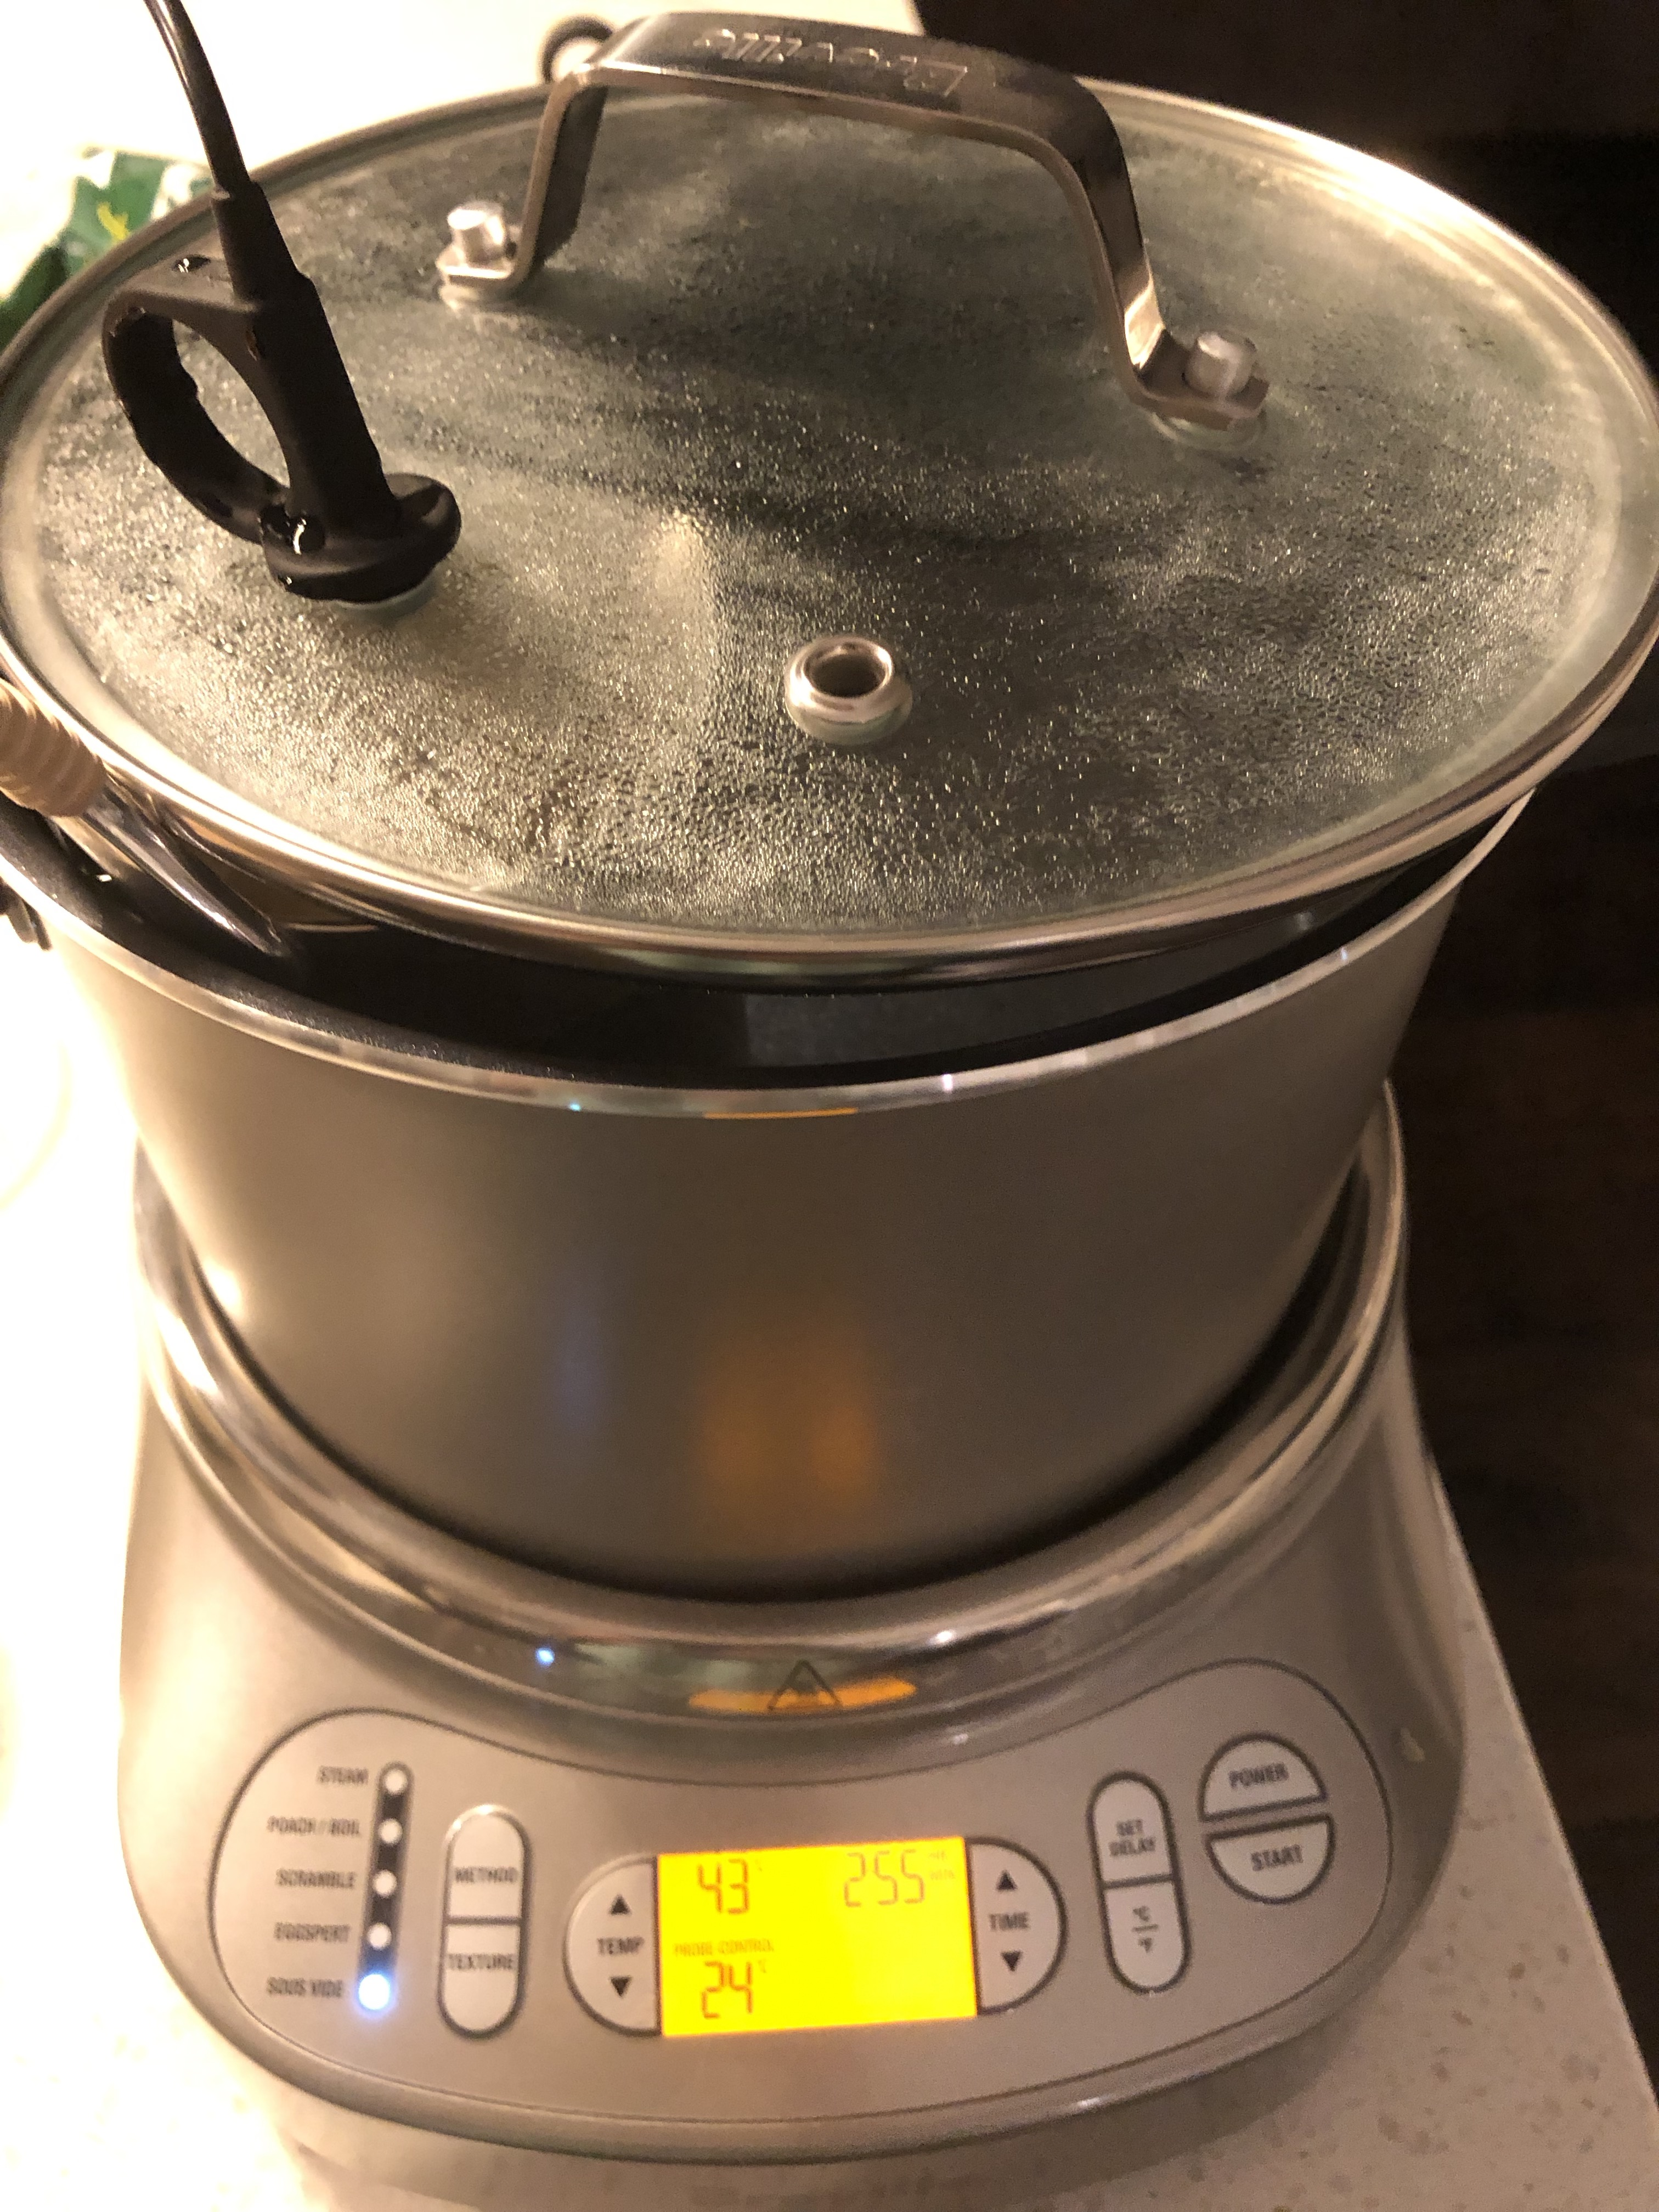 A tanpo sake heating vessel in a sous-vide with the probe in the sake and the temperature programmed for 43 degrees for 300 minutes